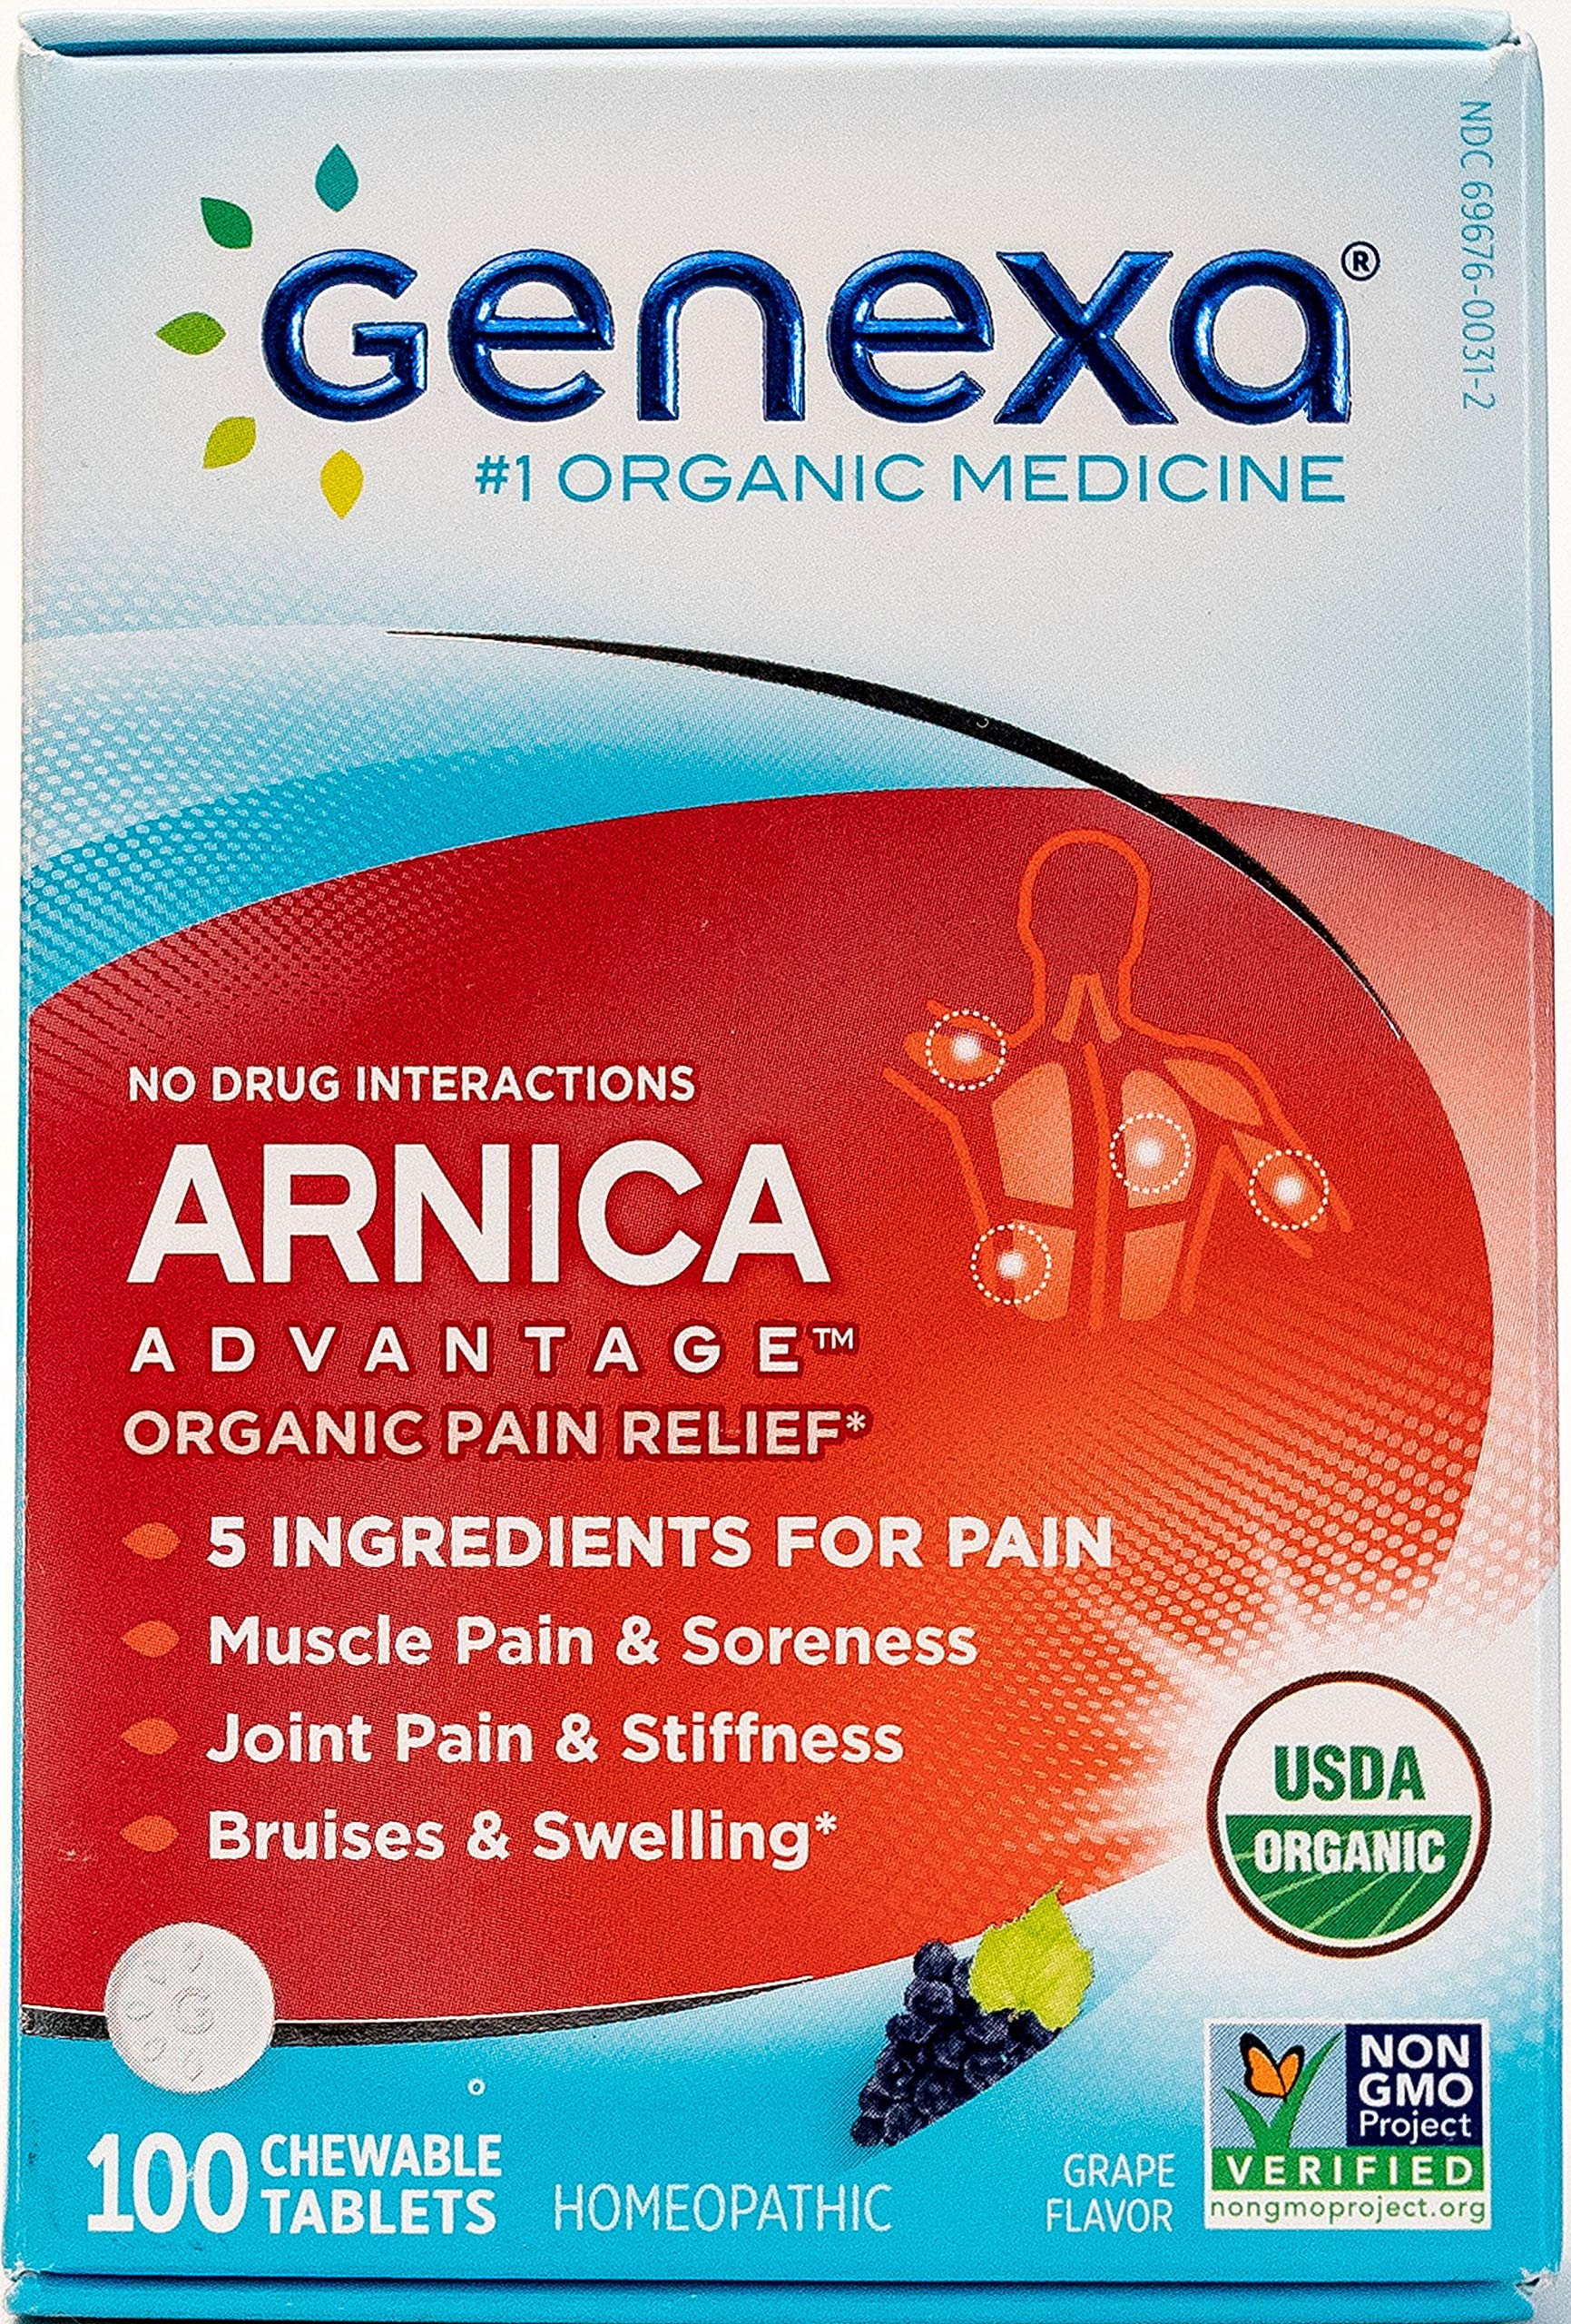 Genexa Arnica Pain Relief: Certified Organic, Homeopathic, Physician Formulated, Natural, Non-GMO Verified. Pain Reliever for Muscle, Joint & Back Pain, Swelling, Bruising (100 Chewable Tablets)